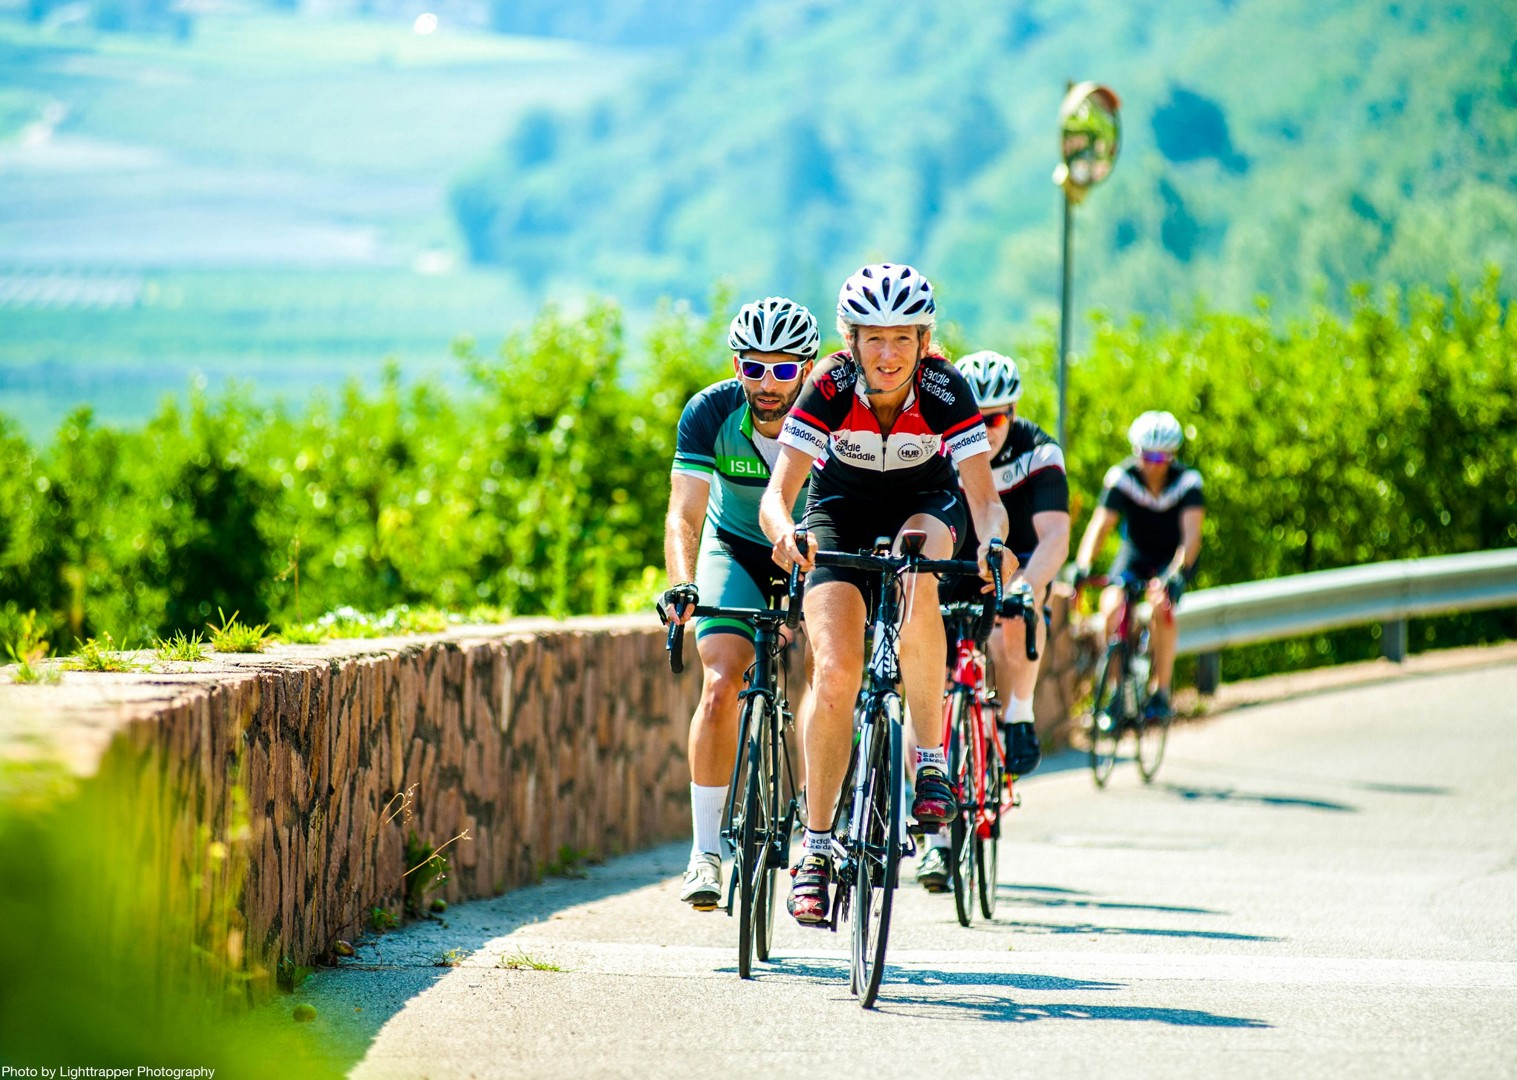 saddle_skedaddle_italy_2017_day2_63.jpg - Italy - Tuscany - Giro della Toscana - Guided Road Cycling Holiday - Road Cycling